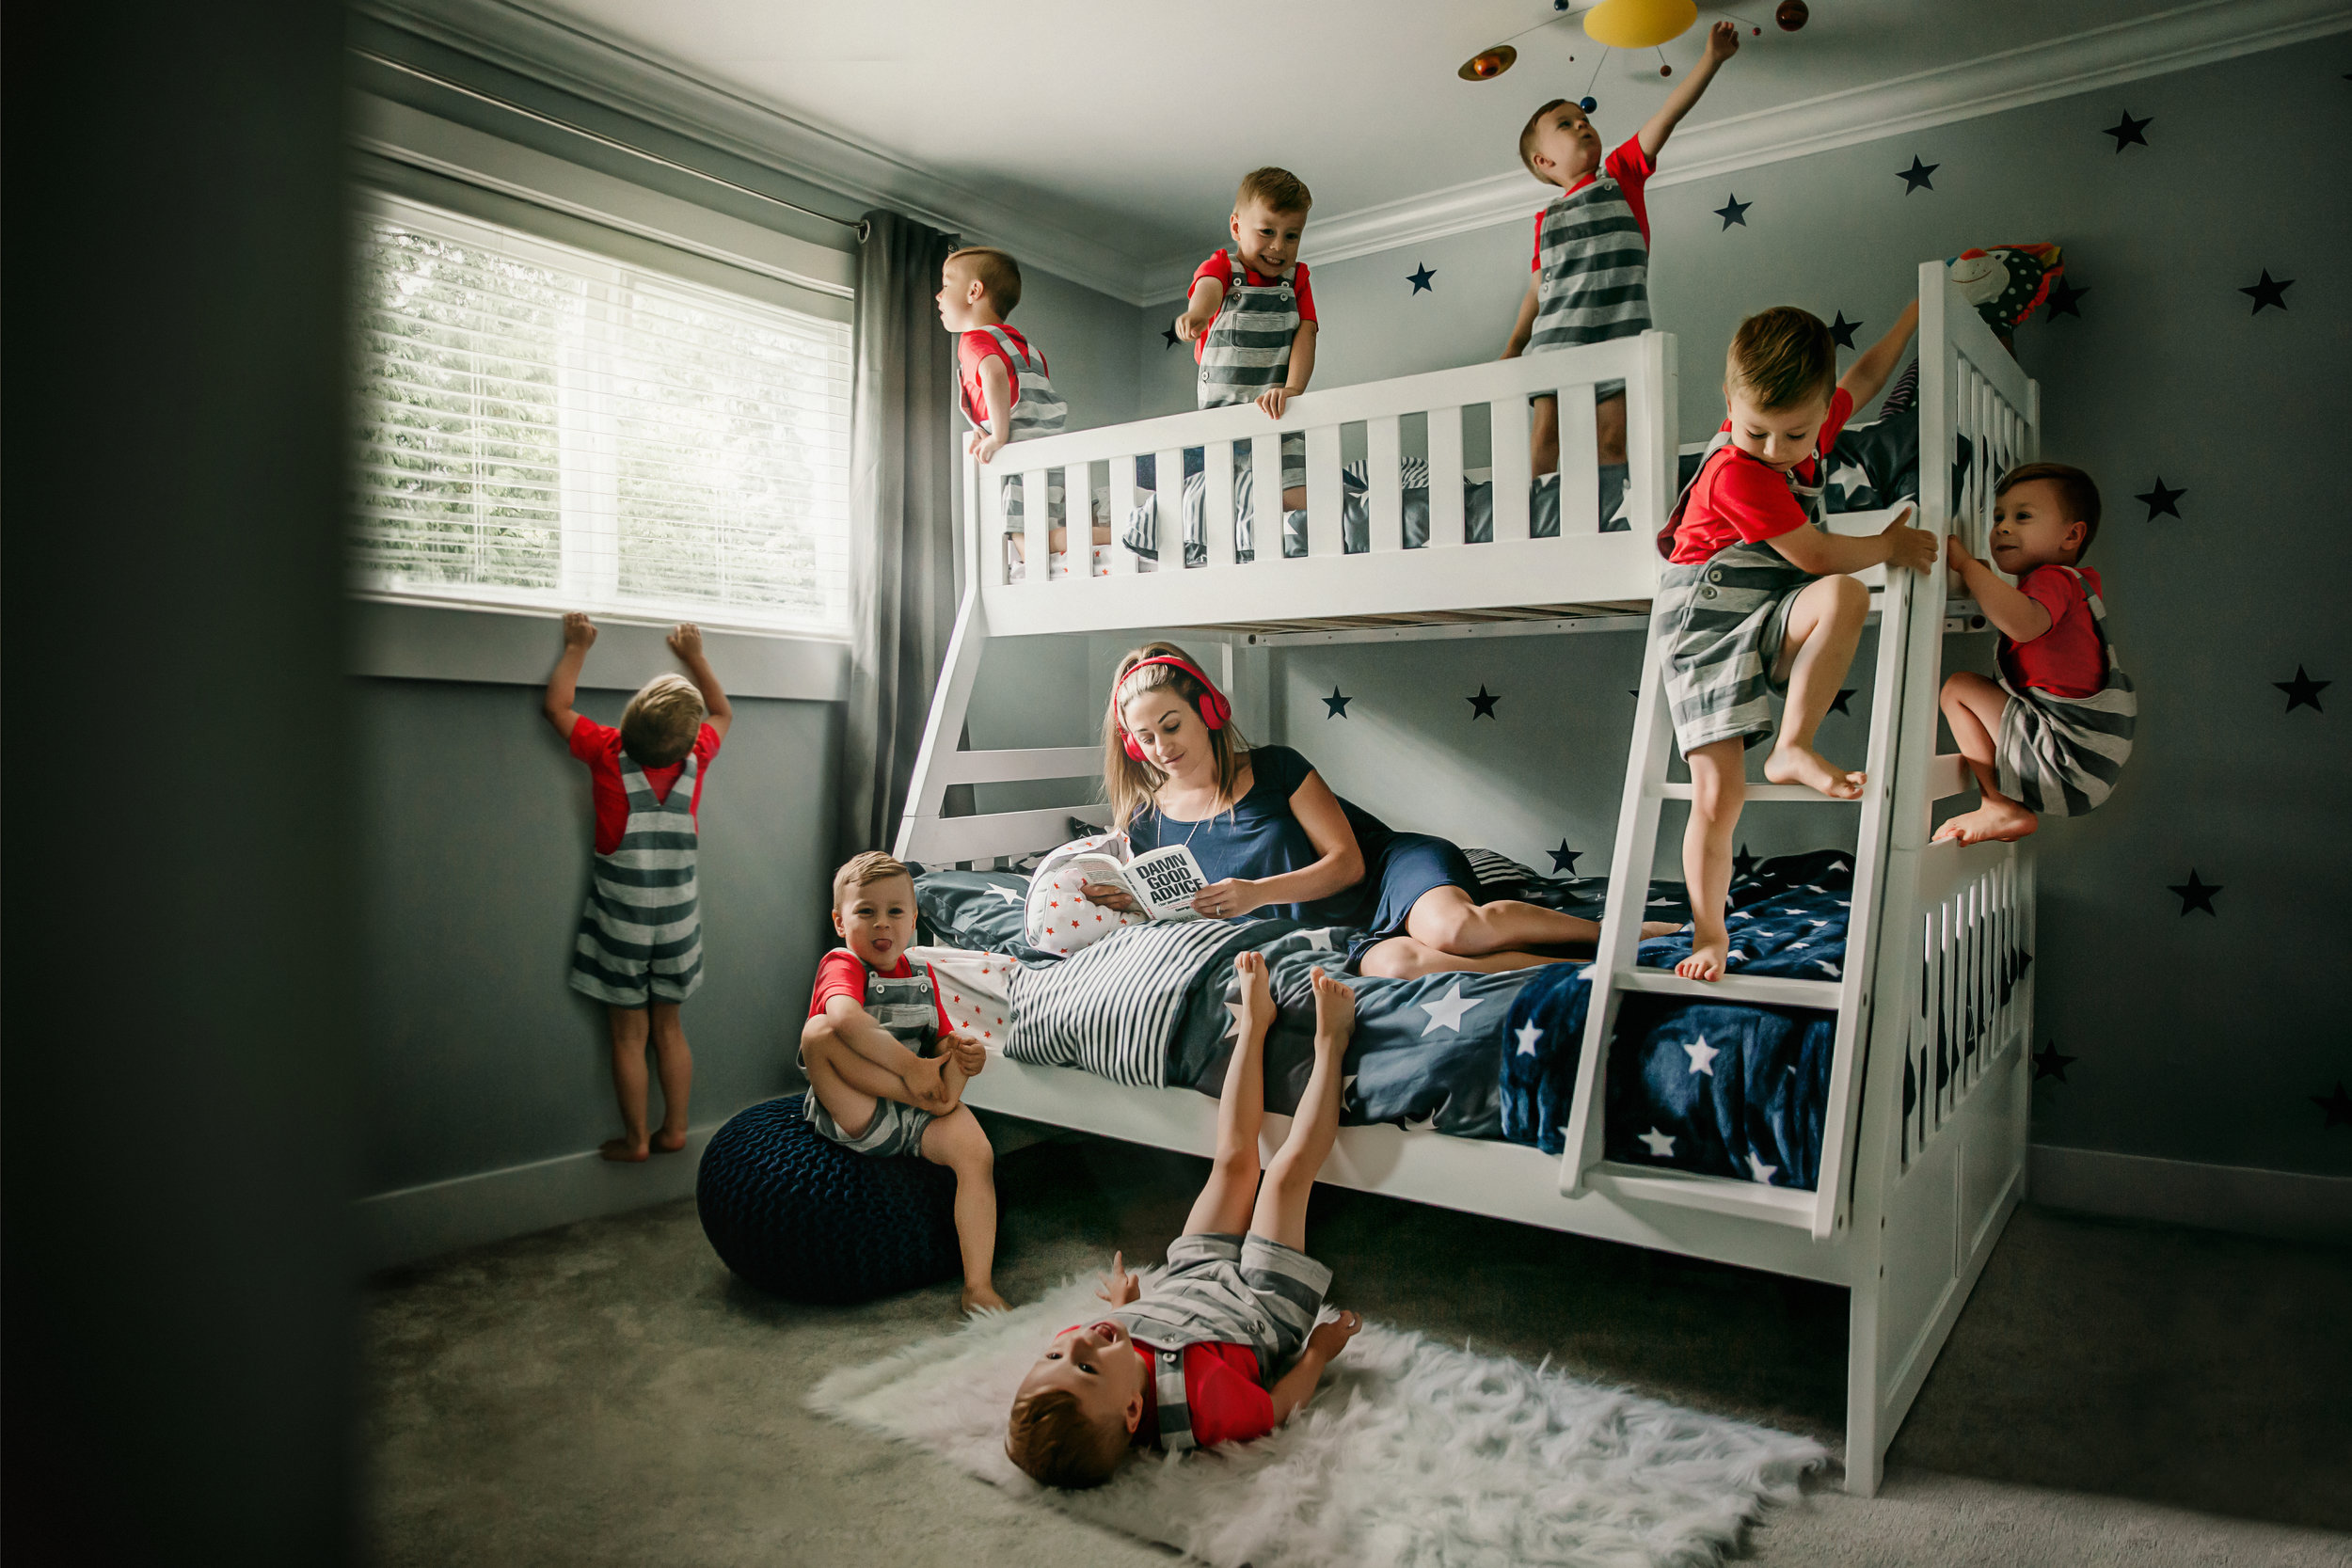 bunk bed composite 2.jpg